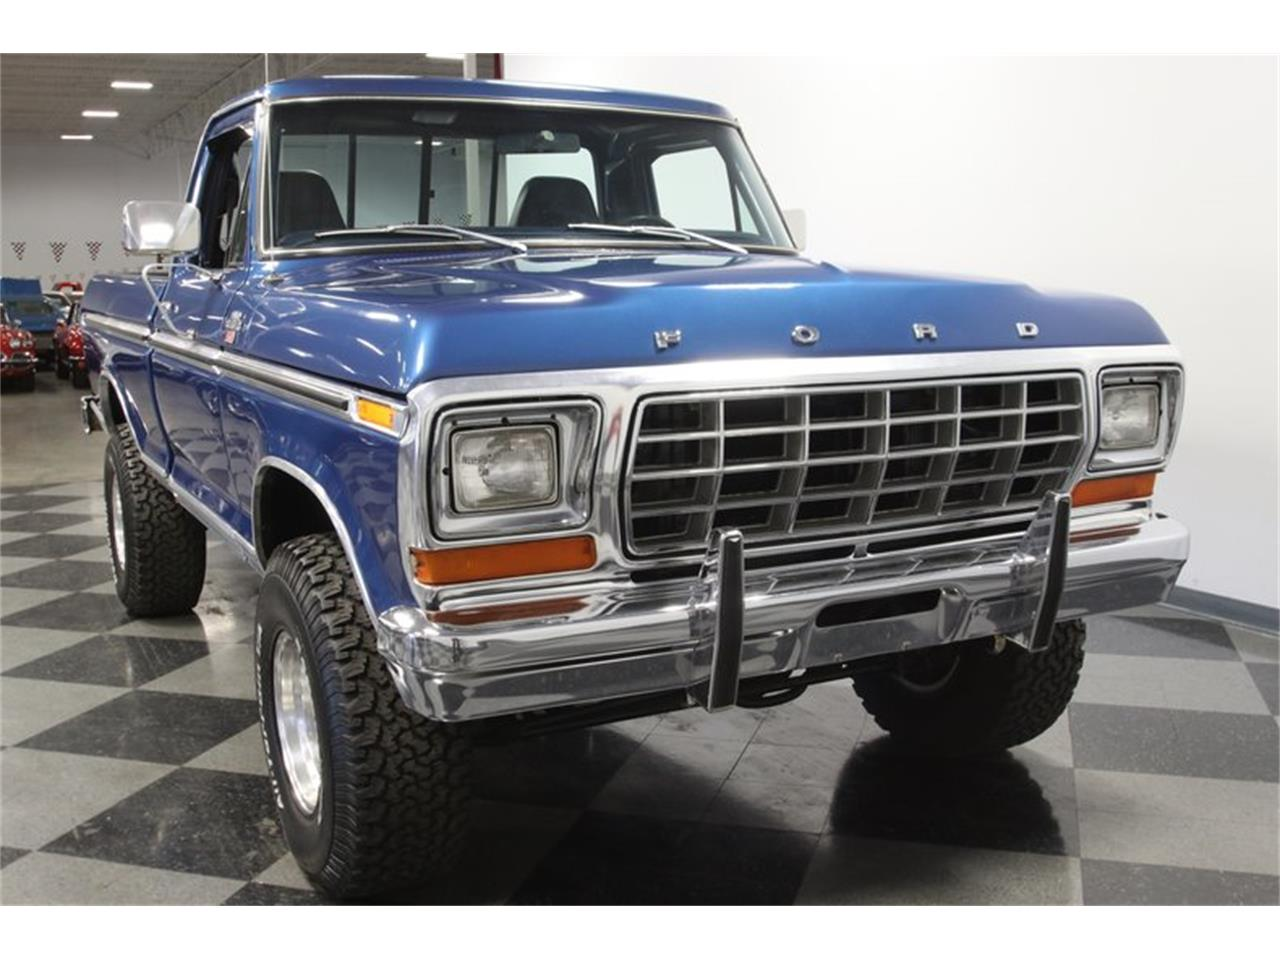 Large Picture of '79 Ford F150 located in North Carolina - $33,995.00 - PW7U